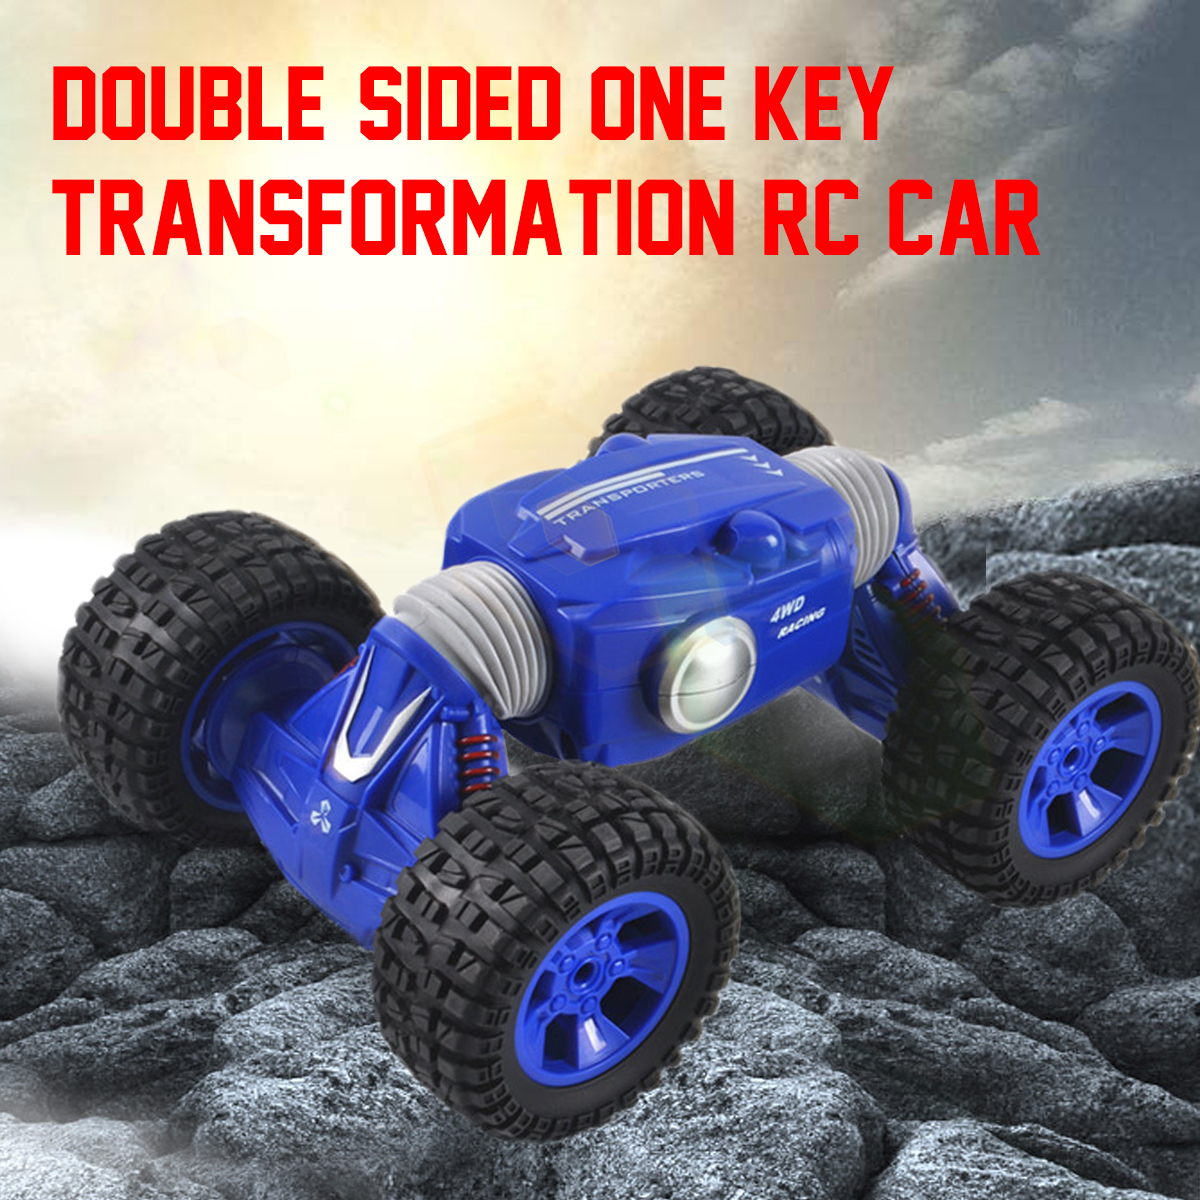 4 Channel 1/16 2.4G Remote Control Climb Double Sided Stunt Car Rechargeable Deformation Toy 4WD Chassis Durable Blue Stable 777 219 rechargeable 1 channel radio control r c submarine toy green